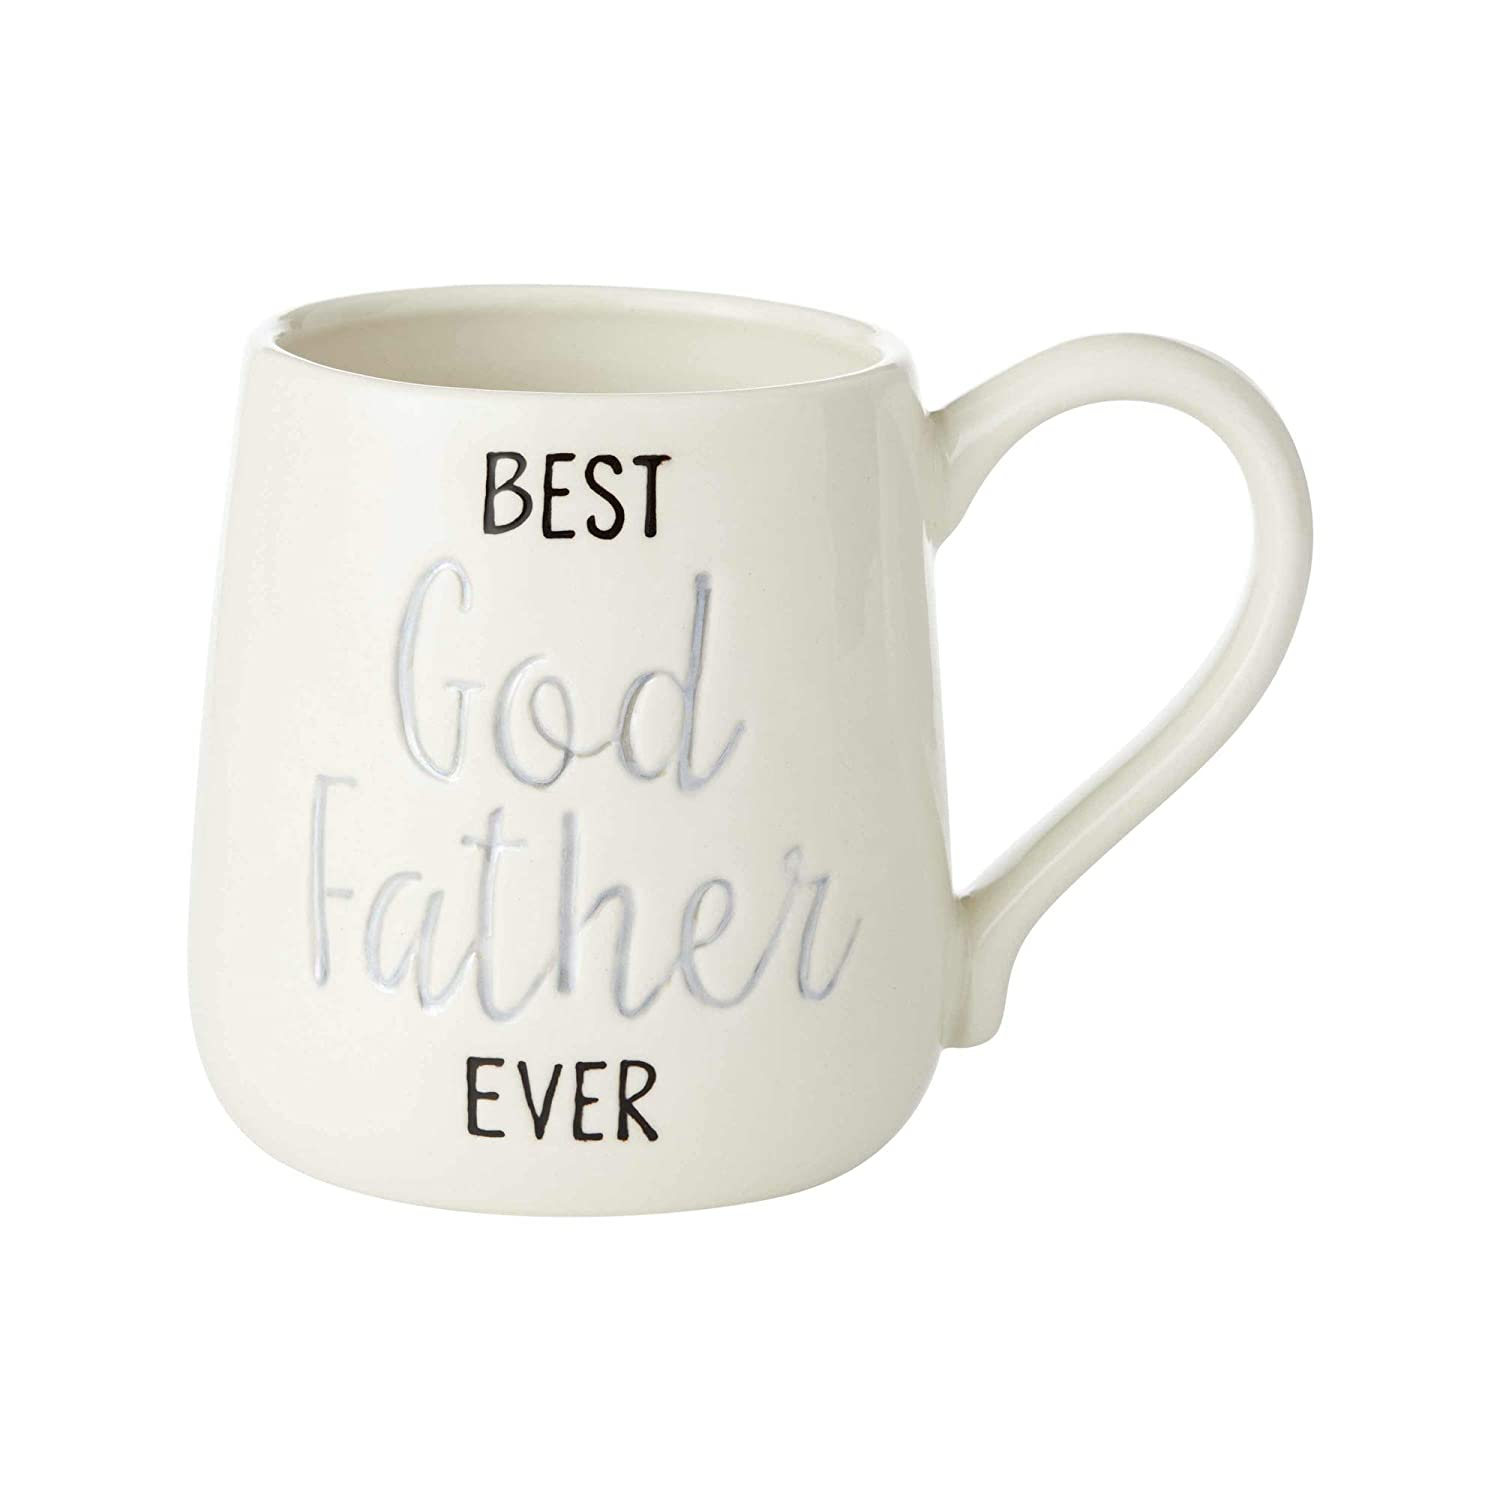 Enesco 6003379 Our Name is Mud Best Godfather Engraved Coffee Mug 16 oz Multicolor